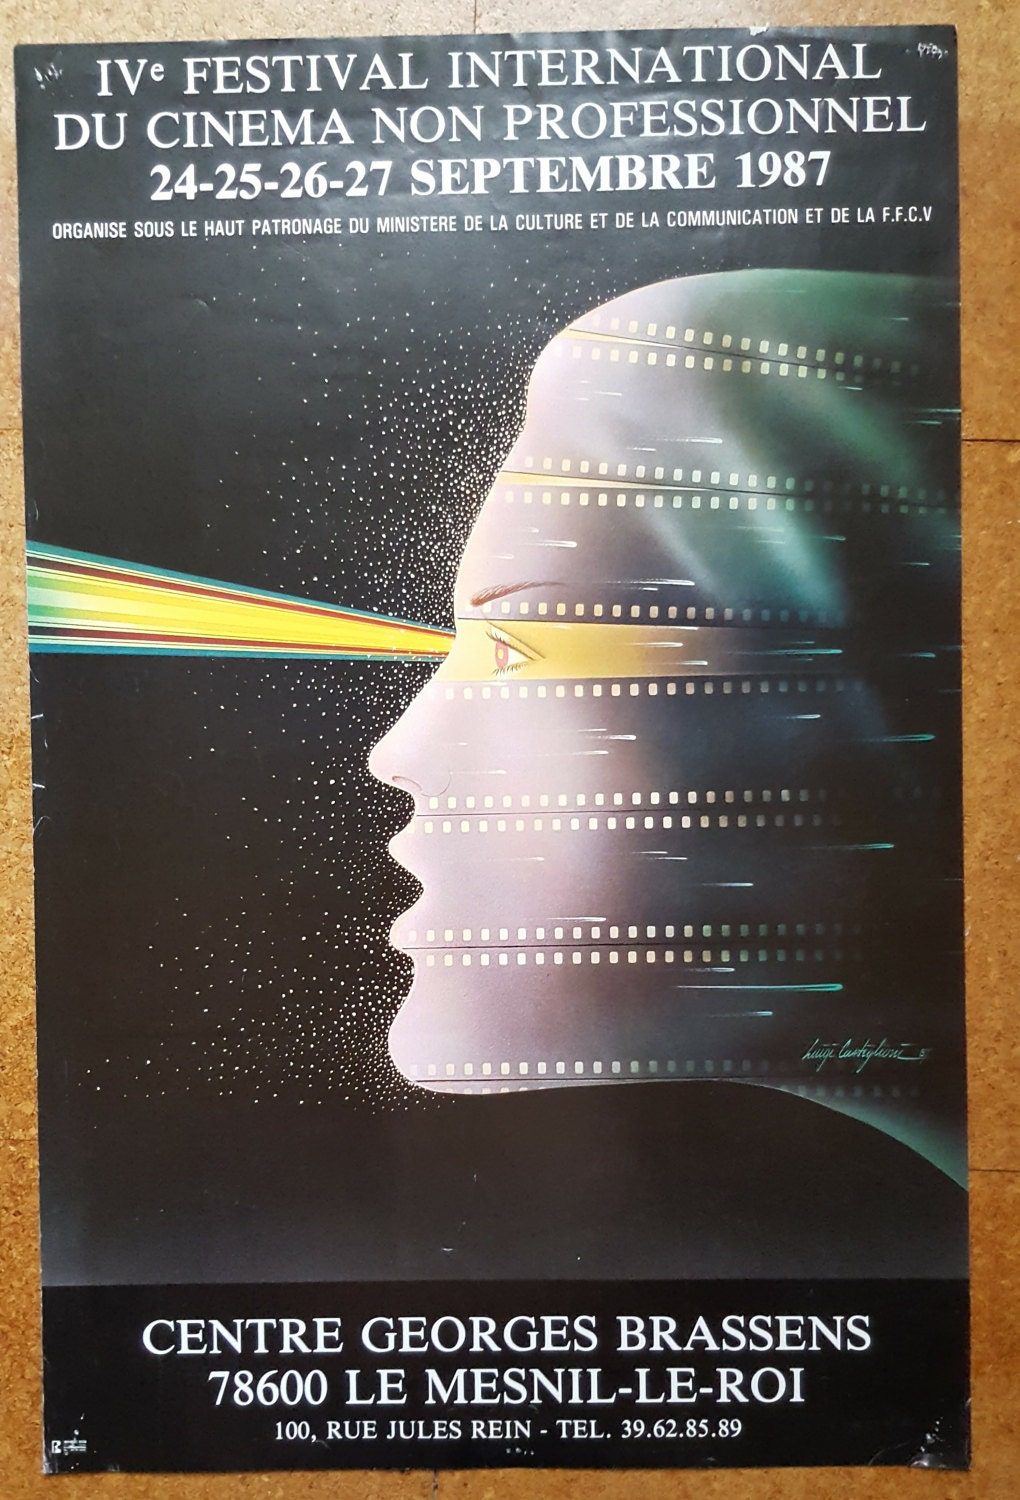 French Vintage Poster  Exhibition Poster  French Art Poster  1980s Art Poster